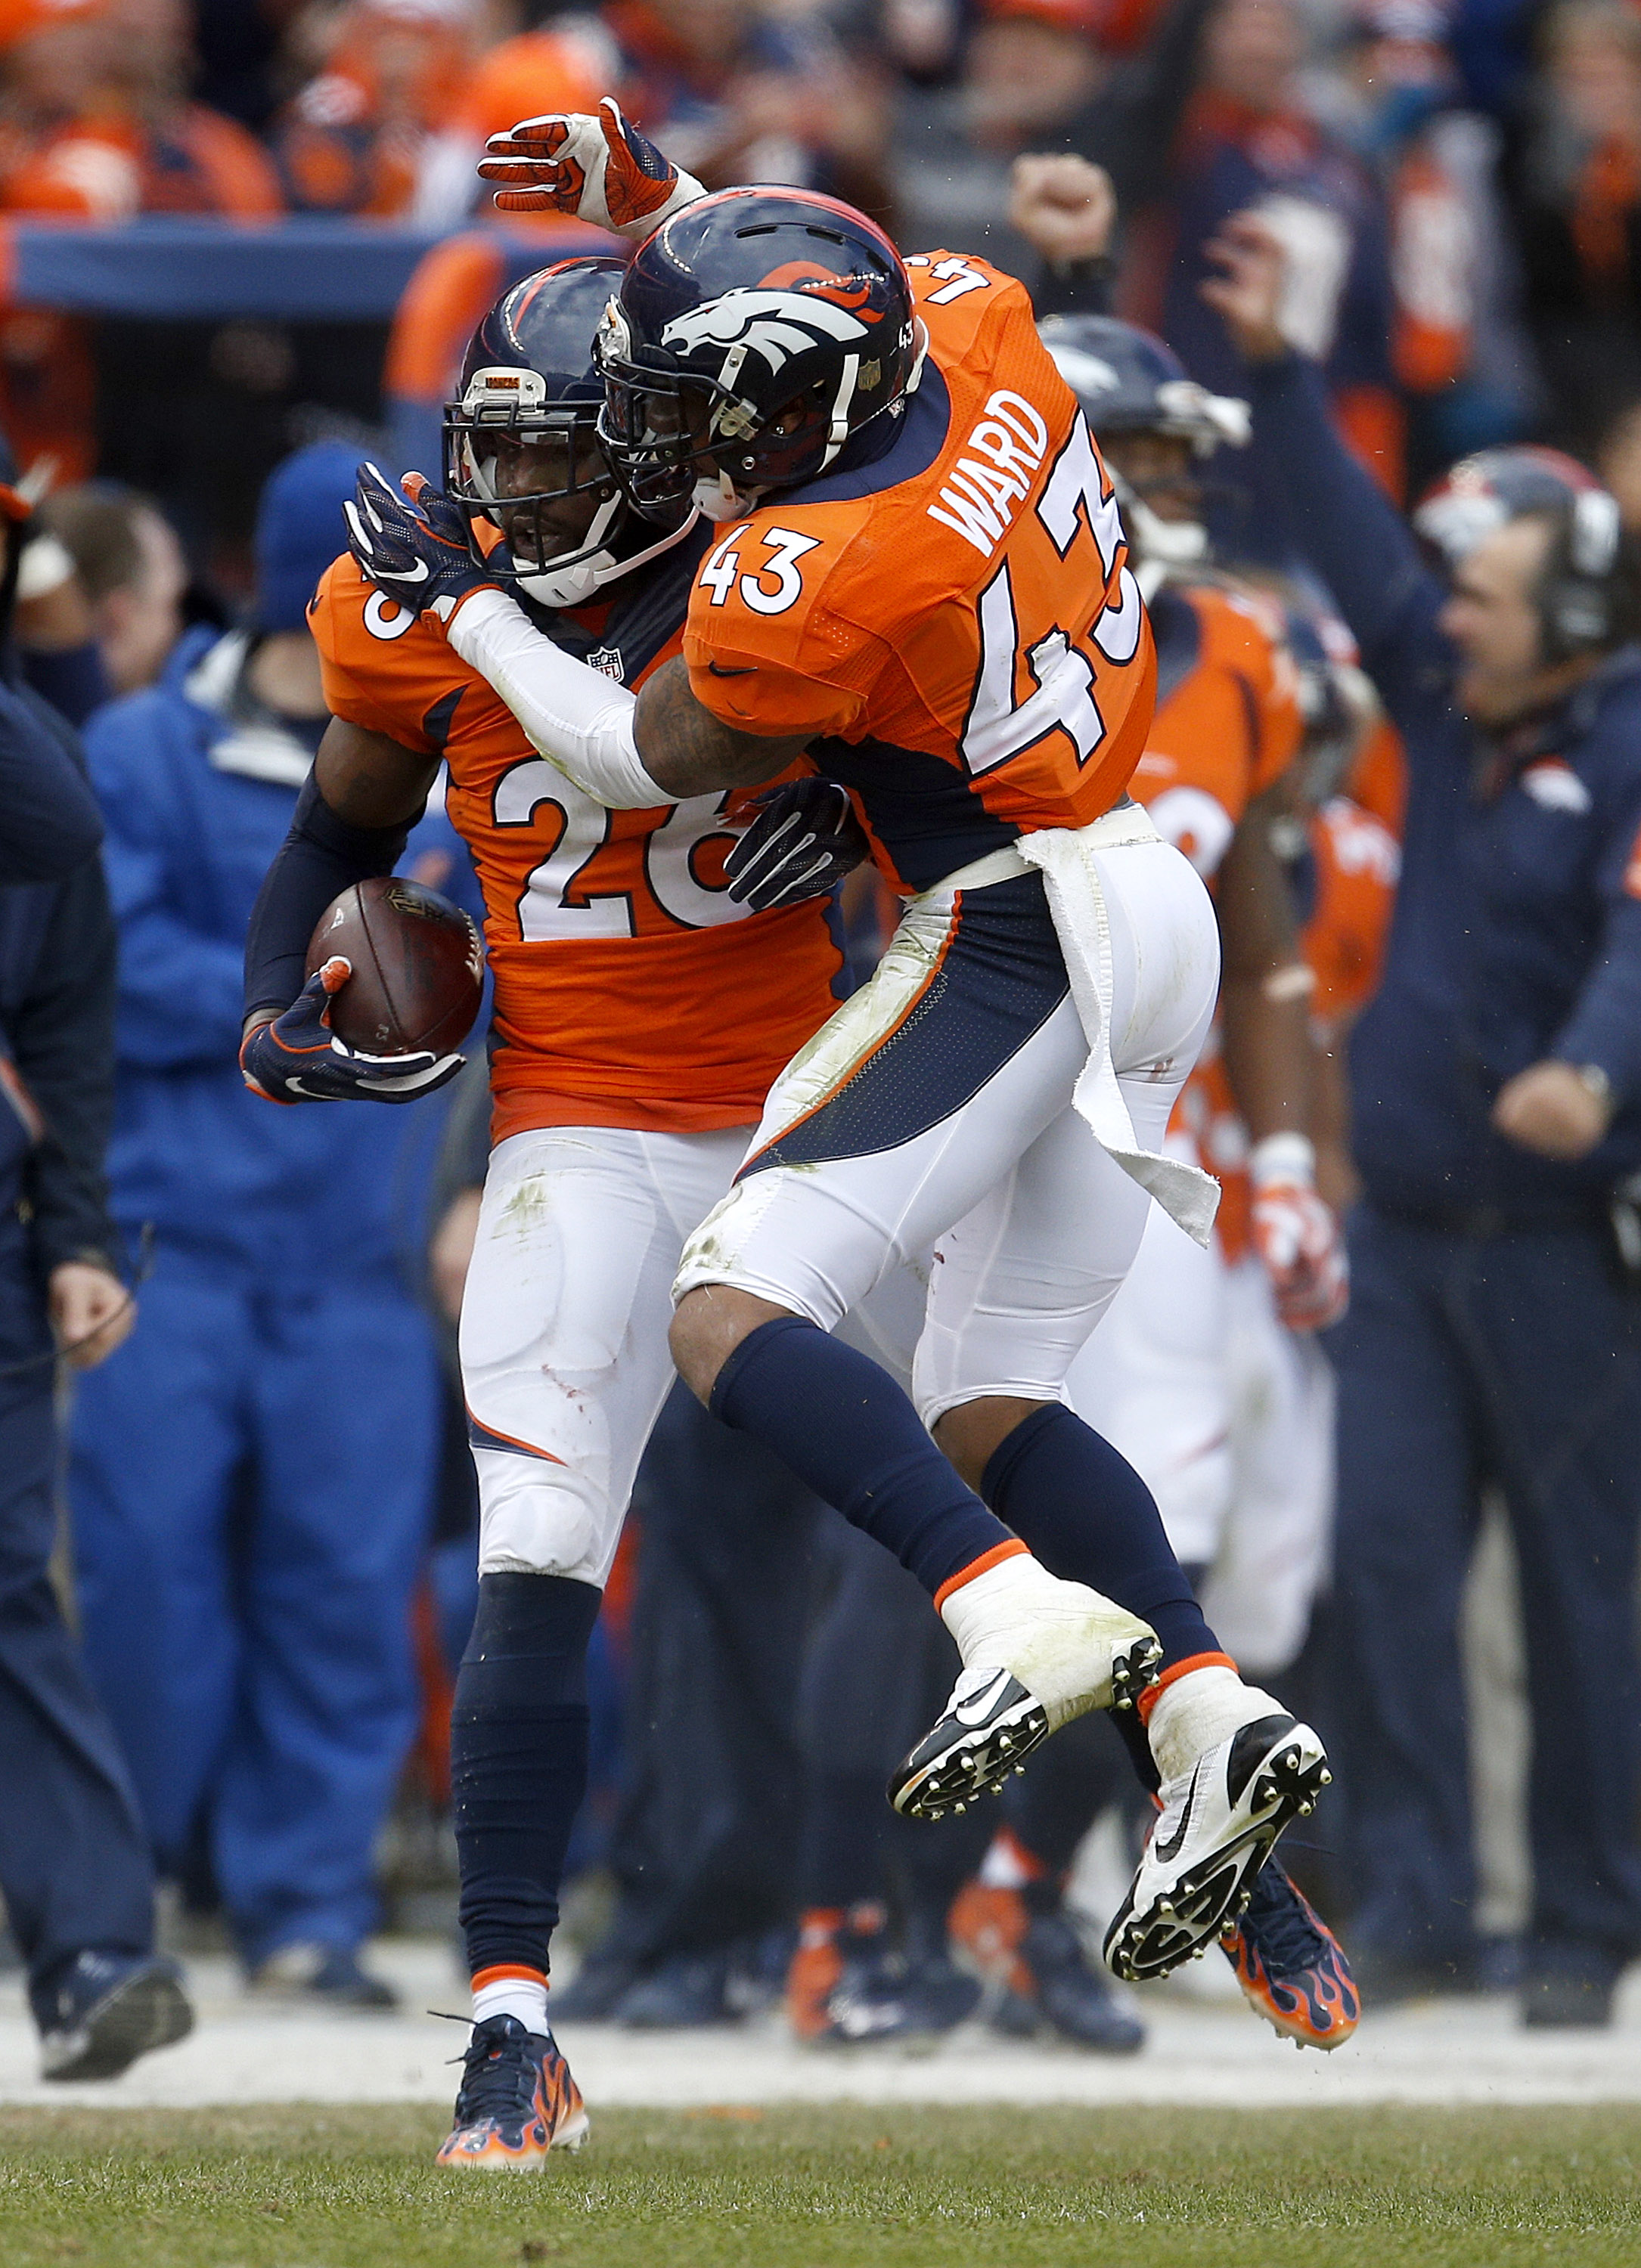 Denver Broncos free safety Darian Stewart (26) is congratulated by teammate T.J. Ward after intercepting a pass from New England Patriots quarterback Tom Brady during the first half the NFL football AFC Championship game between the Denver Broncos and the